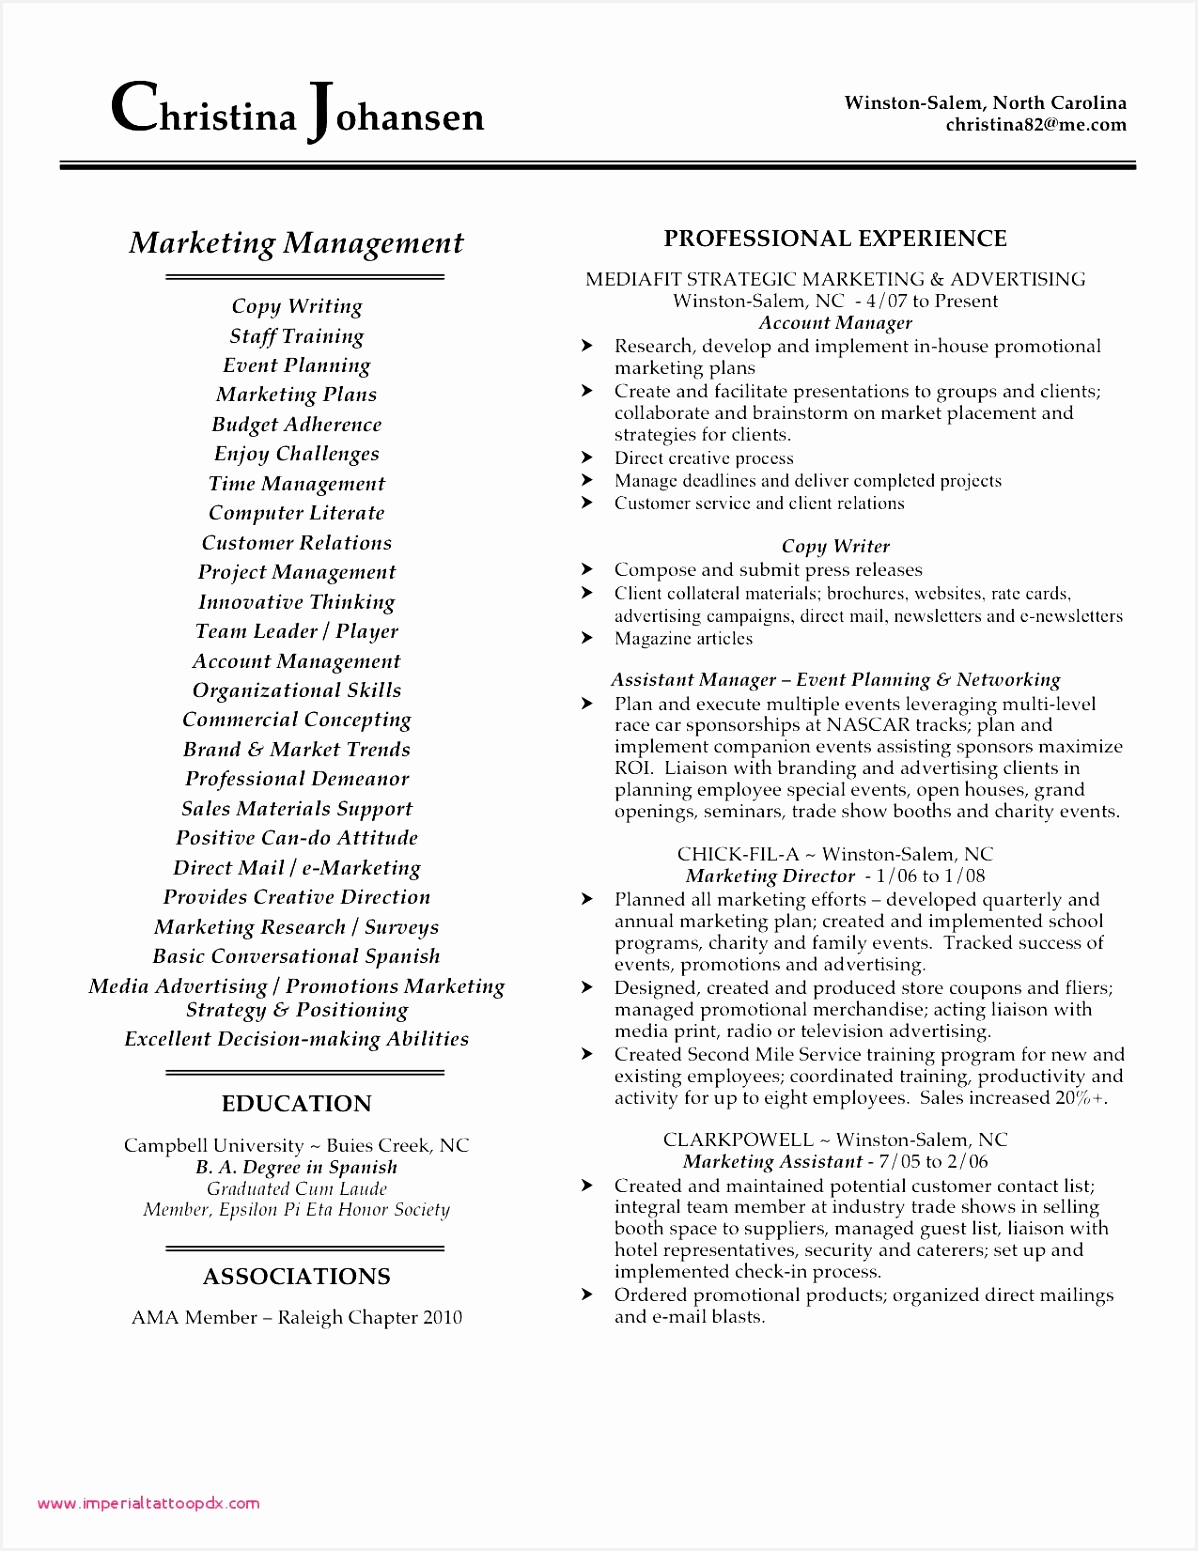 Leadership Skills for Resume Unique Team Leader Resume American Resume Sample New Student Resume 0d 15511198ekFfk